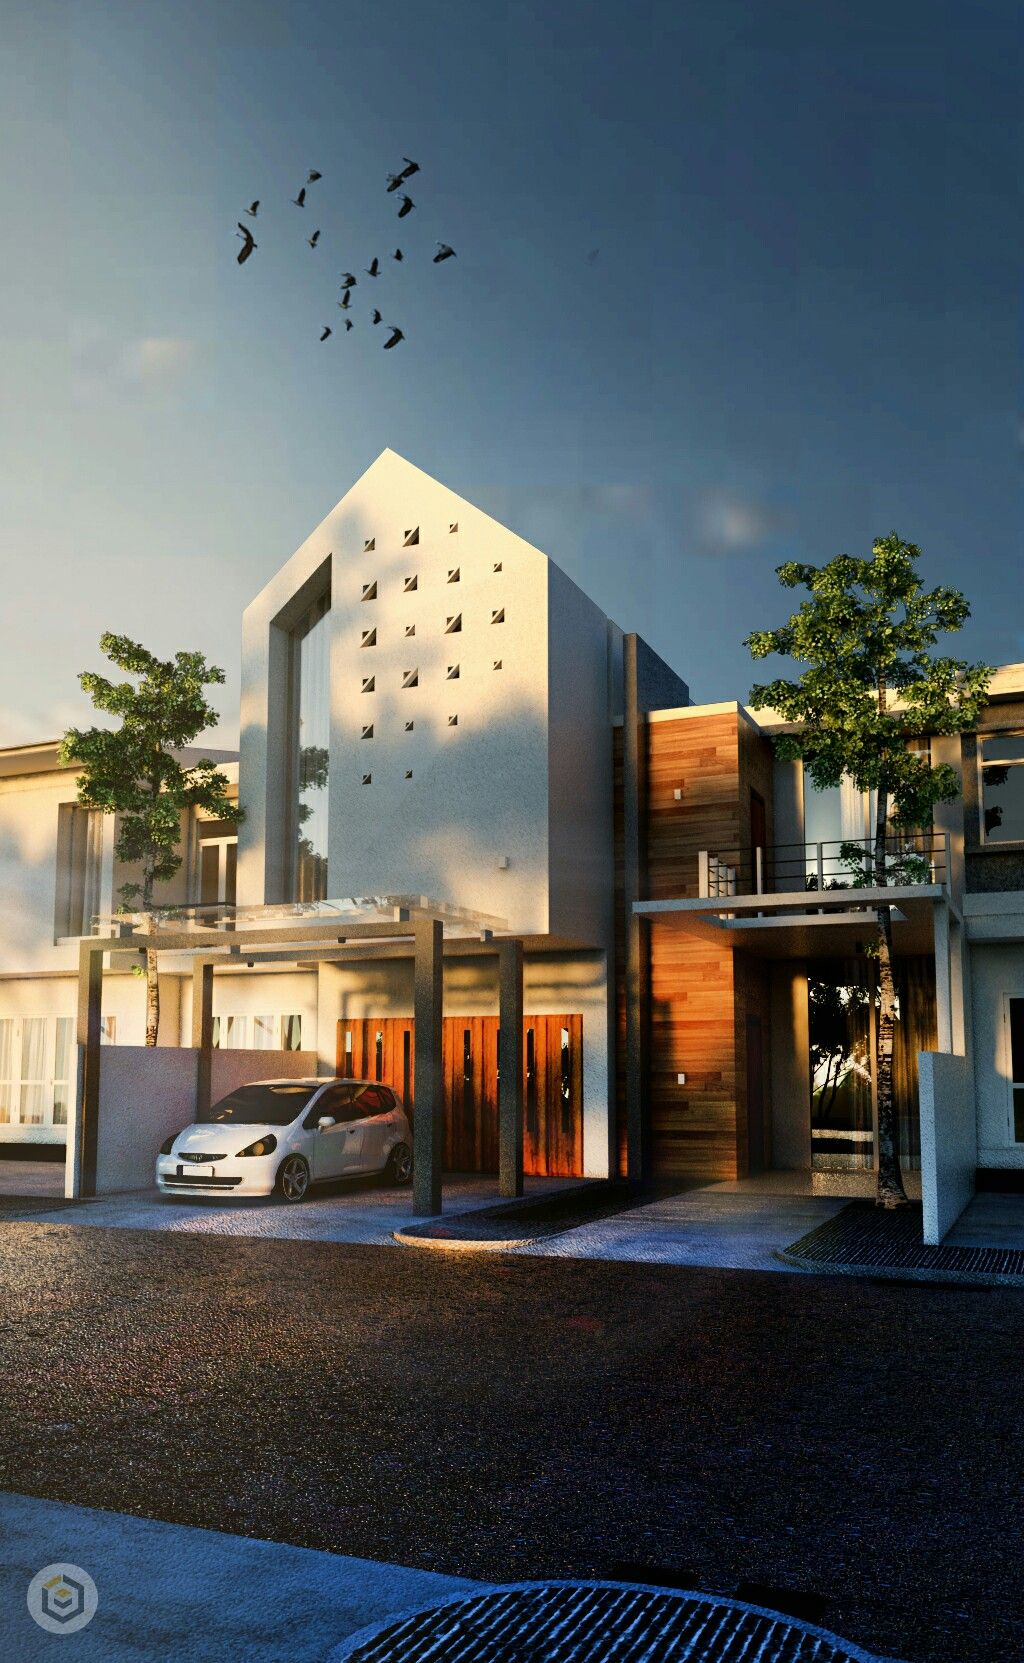 Modern Home Located In Montonate Italy: Modern House. Location Indonesia